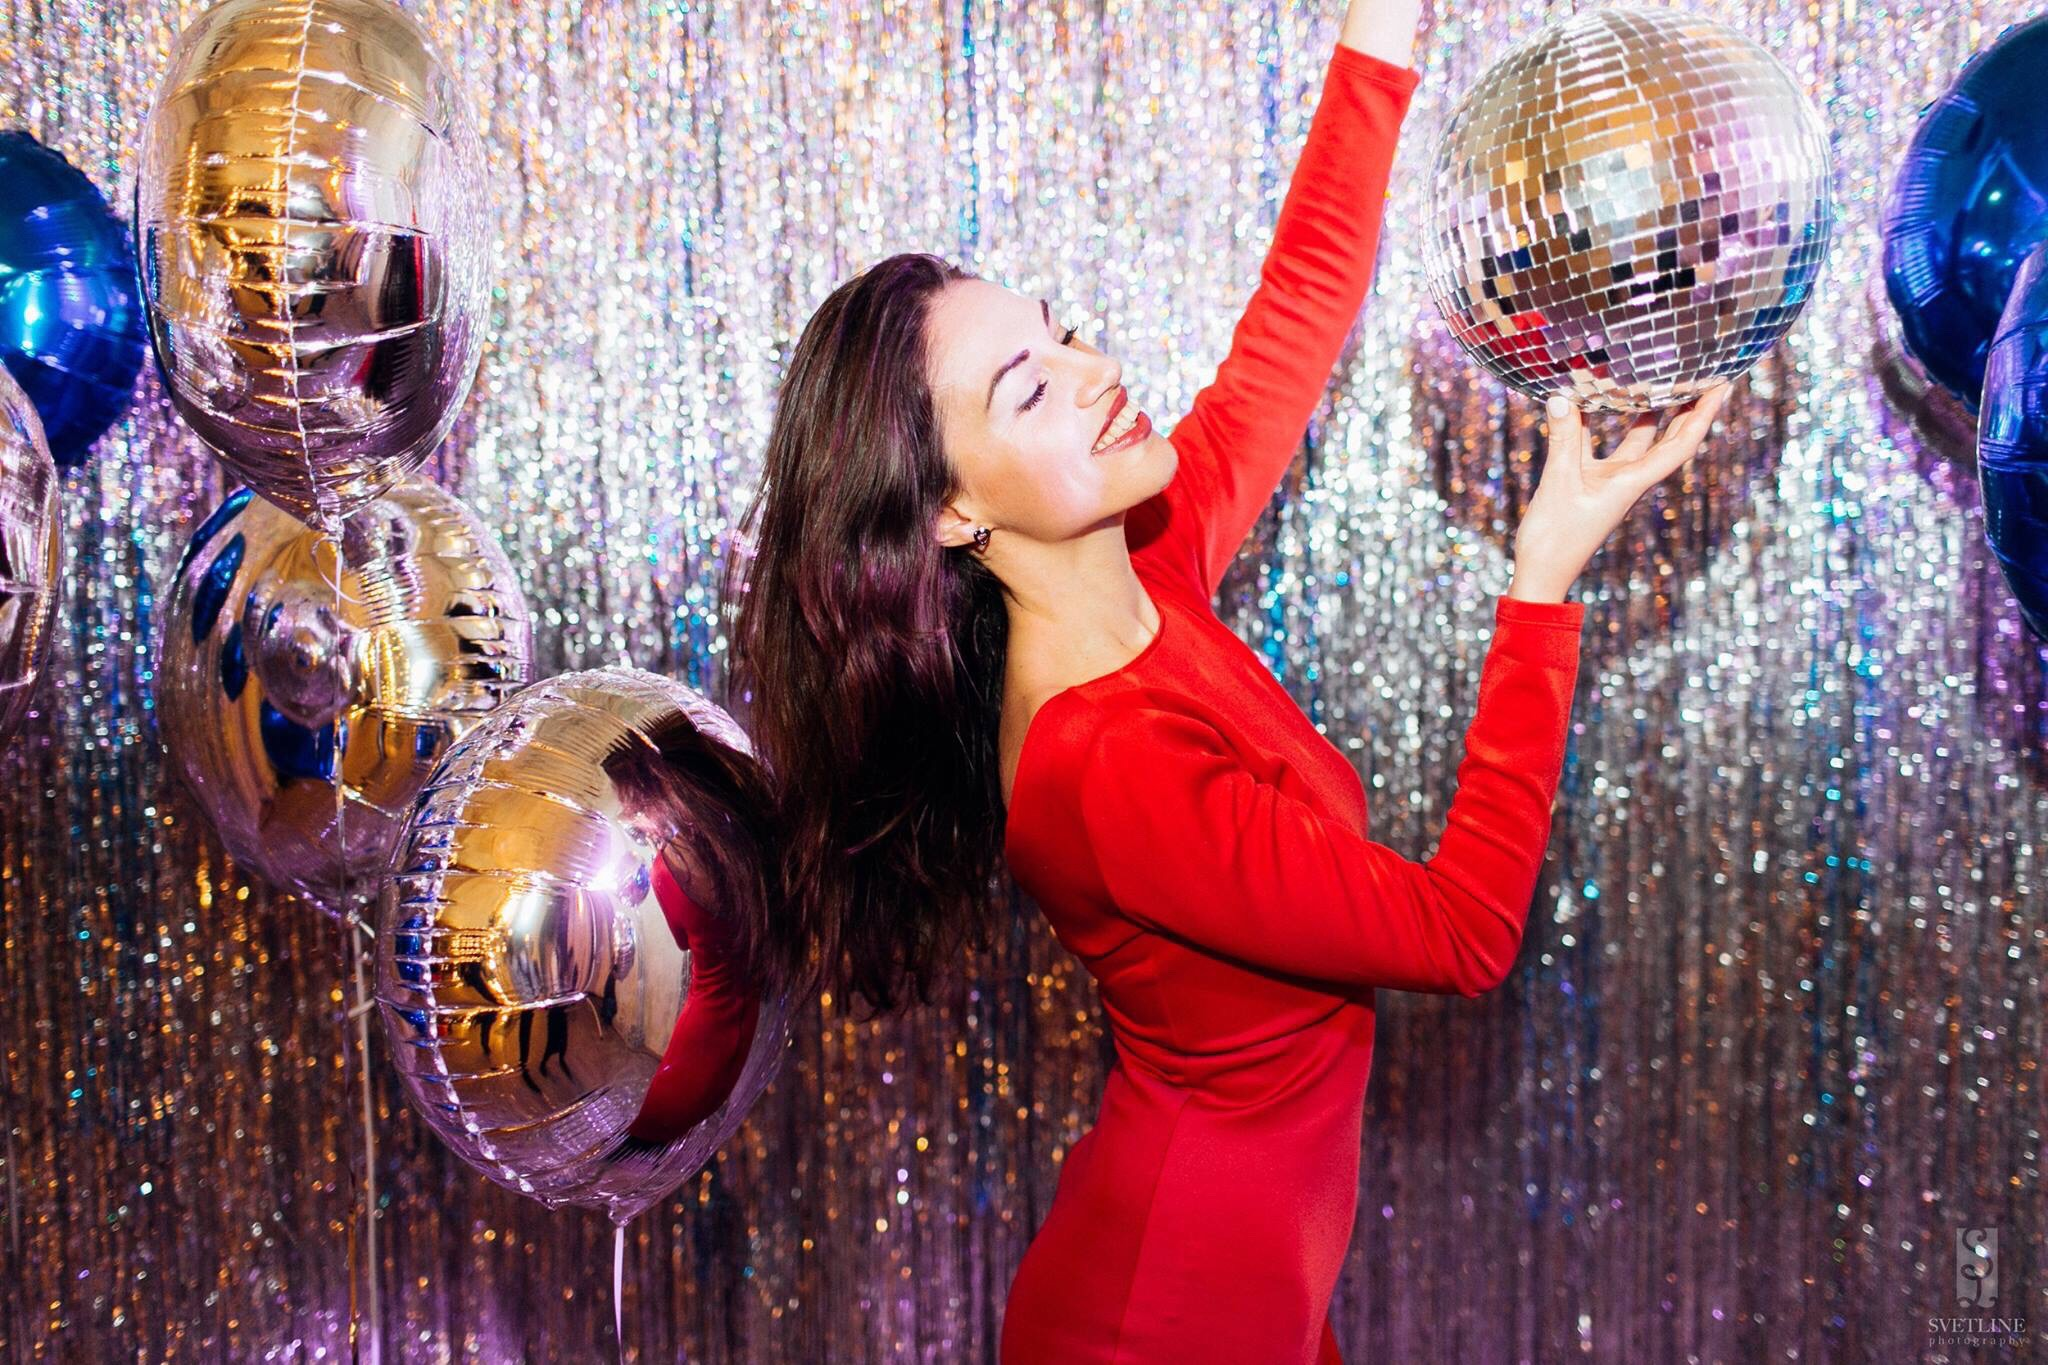 d07316da2154 The Best New Years Eve Parties in NYC to Ring in 2019 - Eventbrite